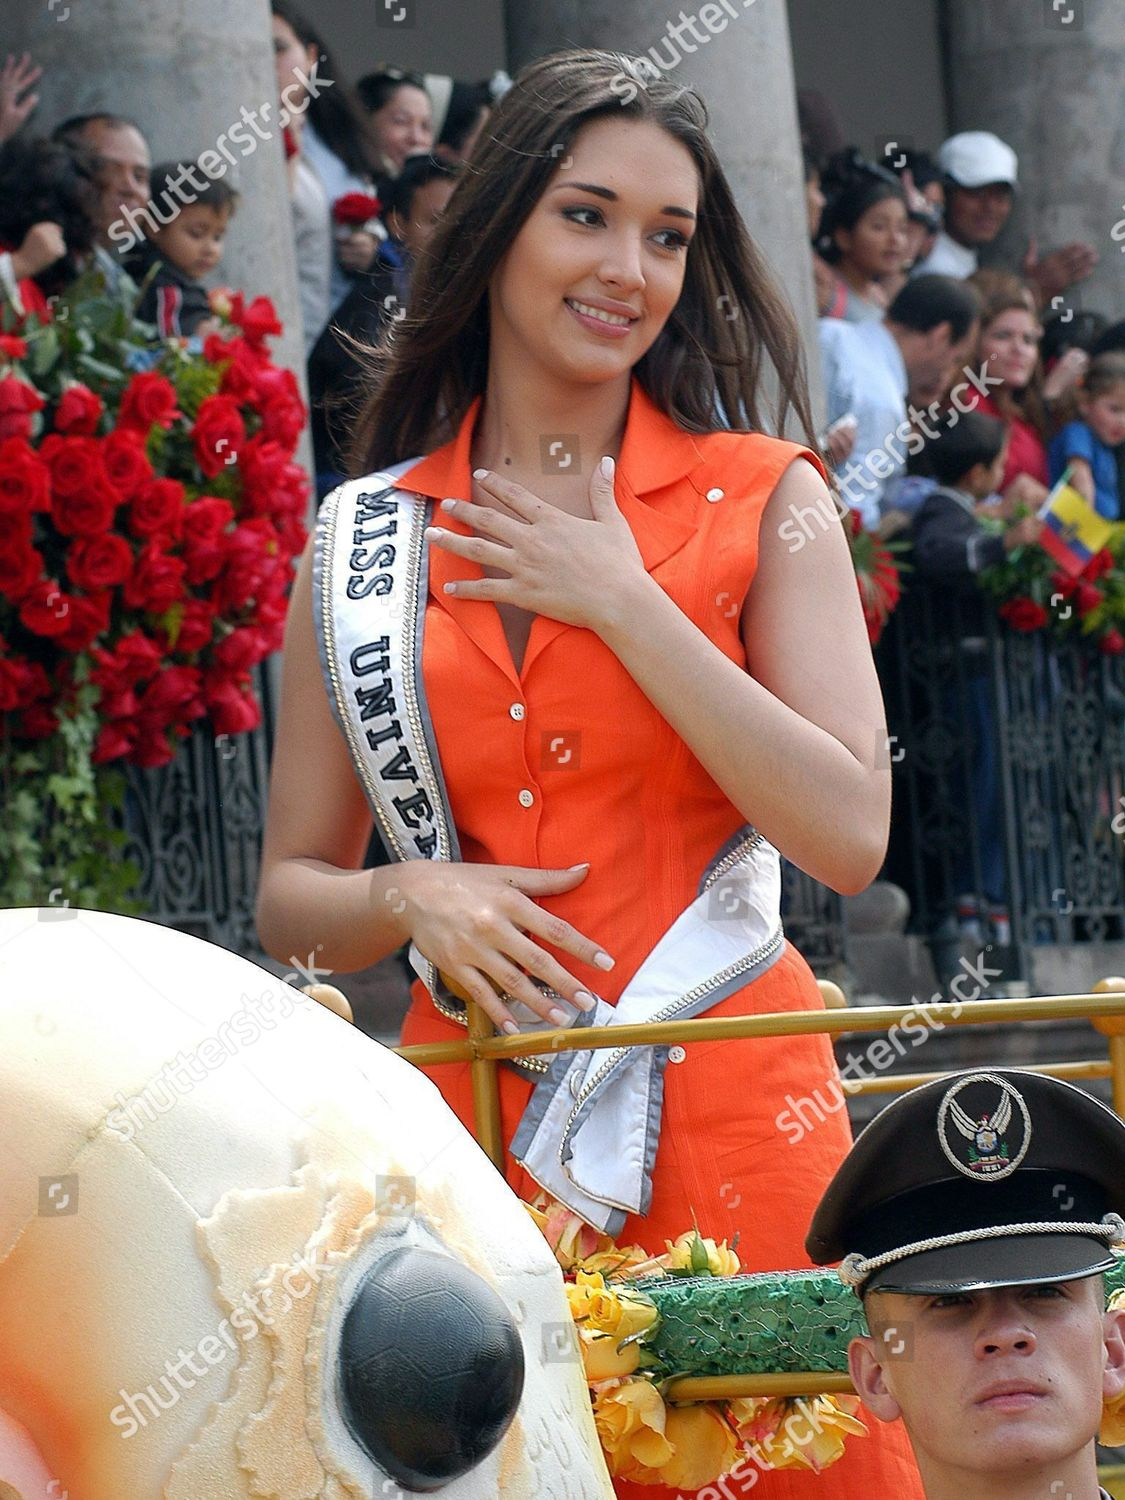 ecuador-miss-universe-parade-may-2004-sh